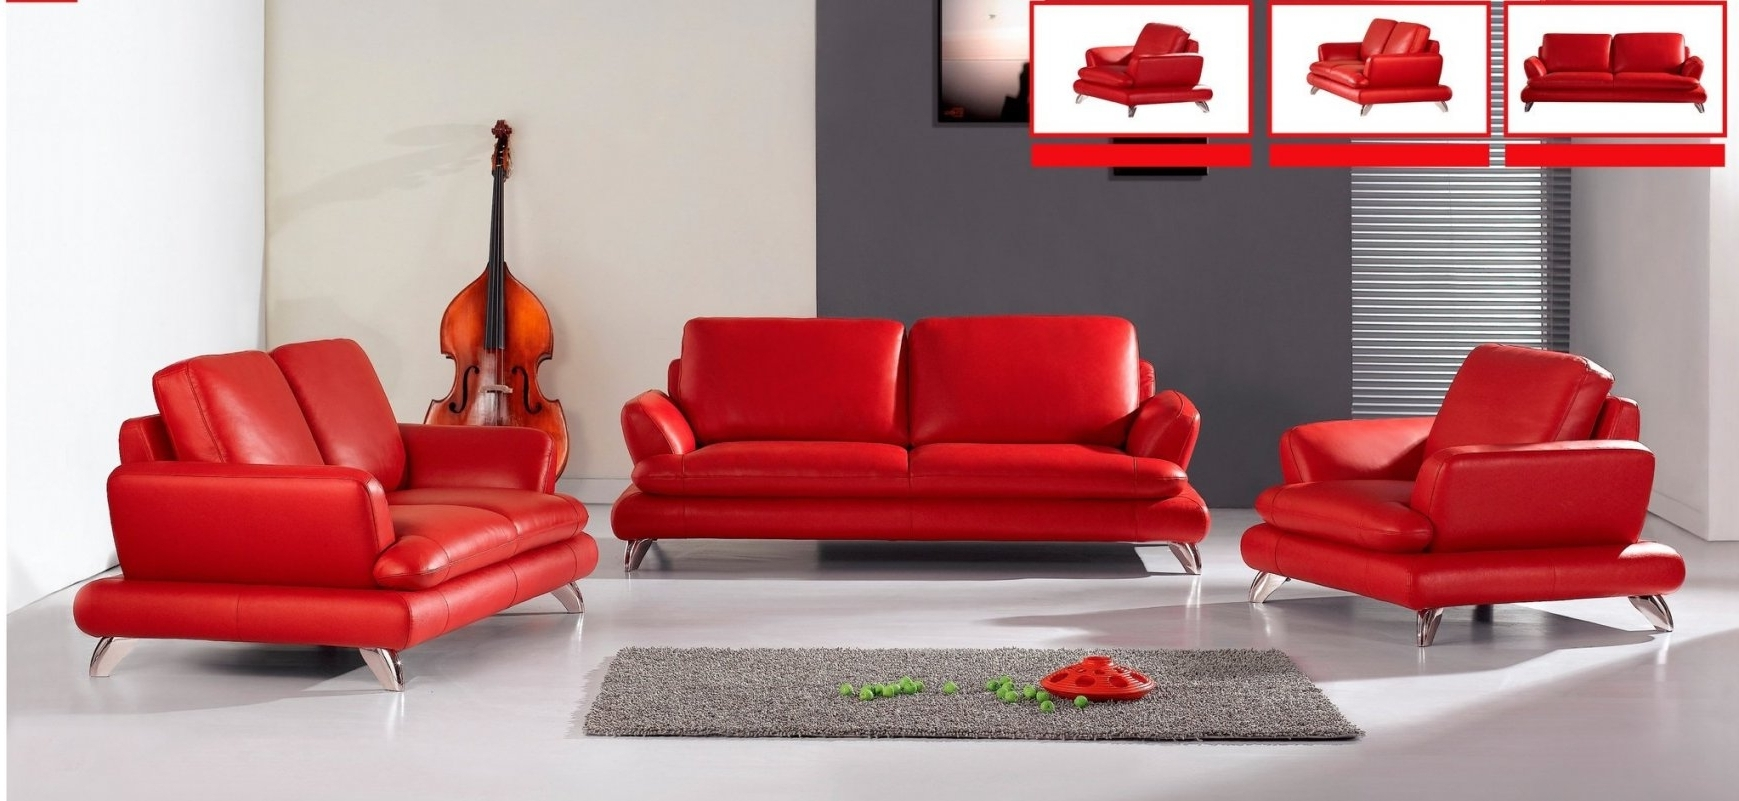 Best And Newest Red Leather Sofas Throughout Contemporary Red Leather Sofa 66 For Living Room Sofa Regarding (View 1 of 20)